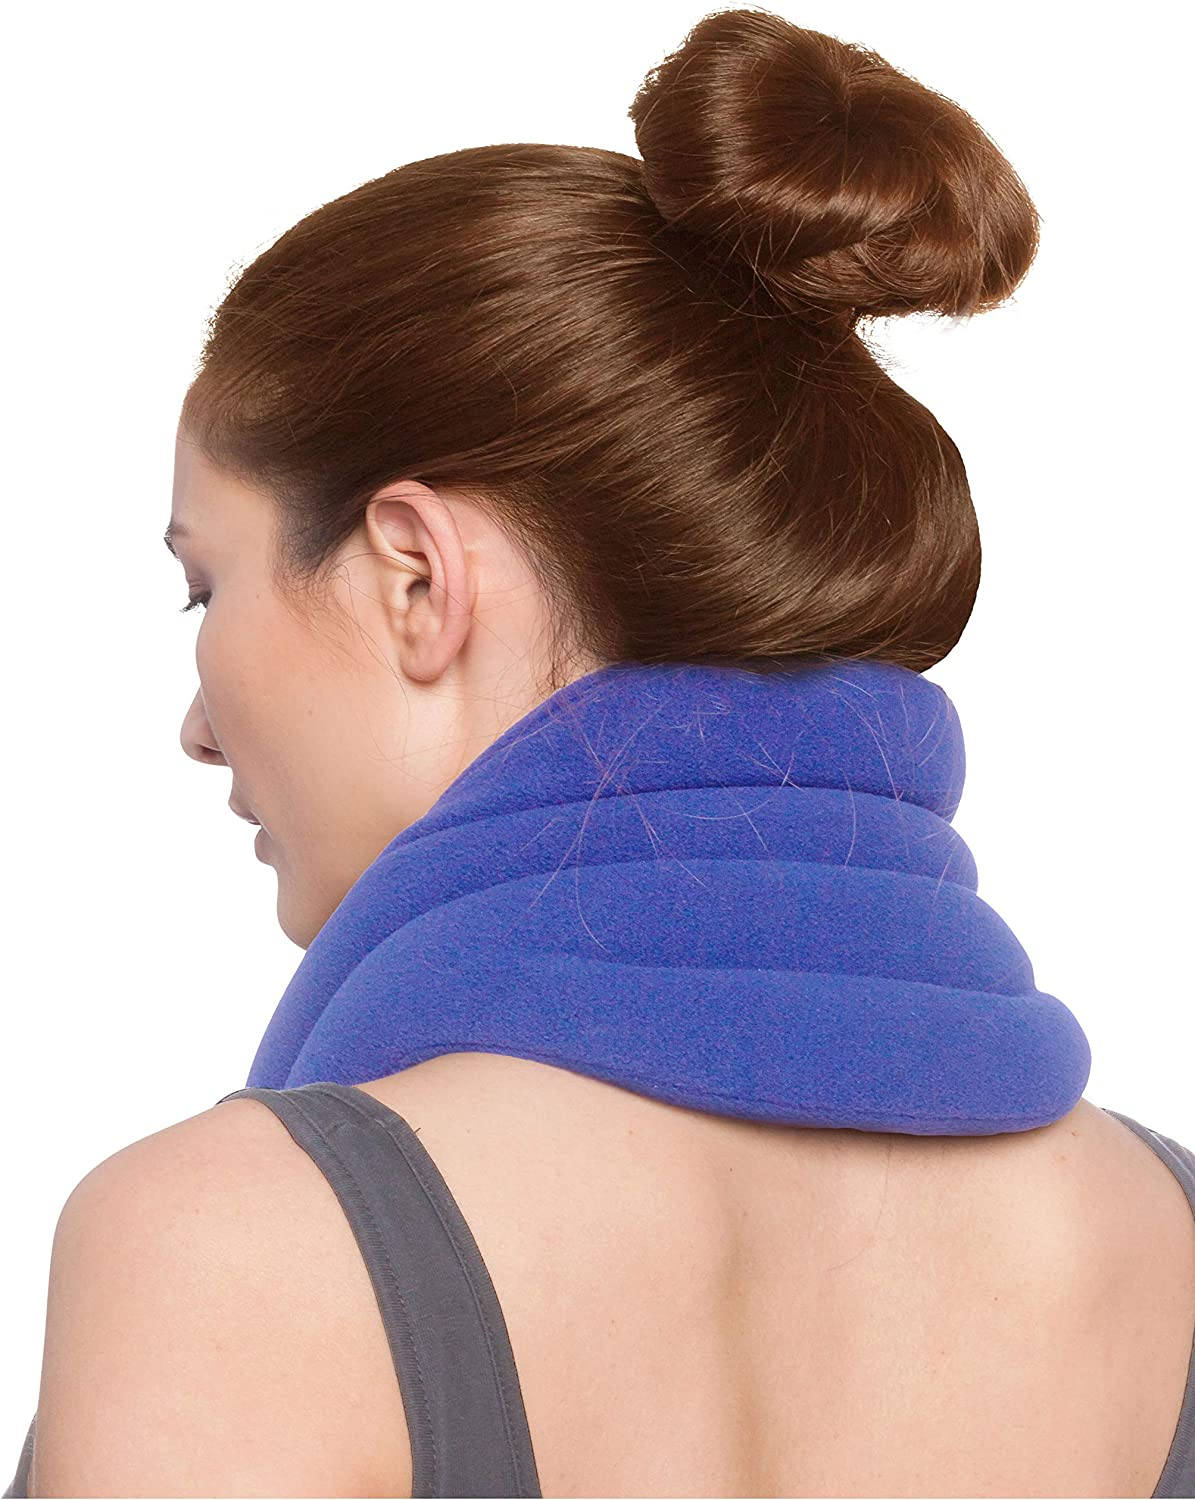 Sunny Bay Hands-Free Neck Heating Wrap: Microwavable Thermal Hot Pack, Heat Therapy Neck Brace for Sore Neck & Shoulder Muscle Pain Relief - Personal, Reusable, Blue (XL SkyBlue)